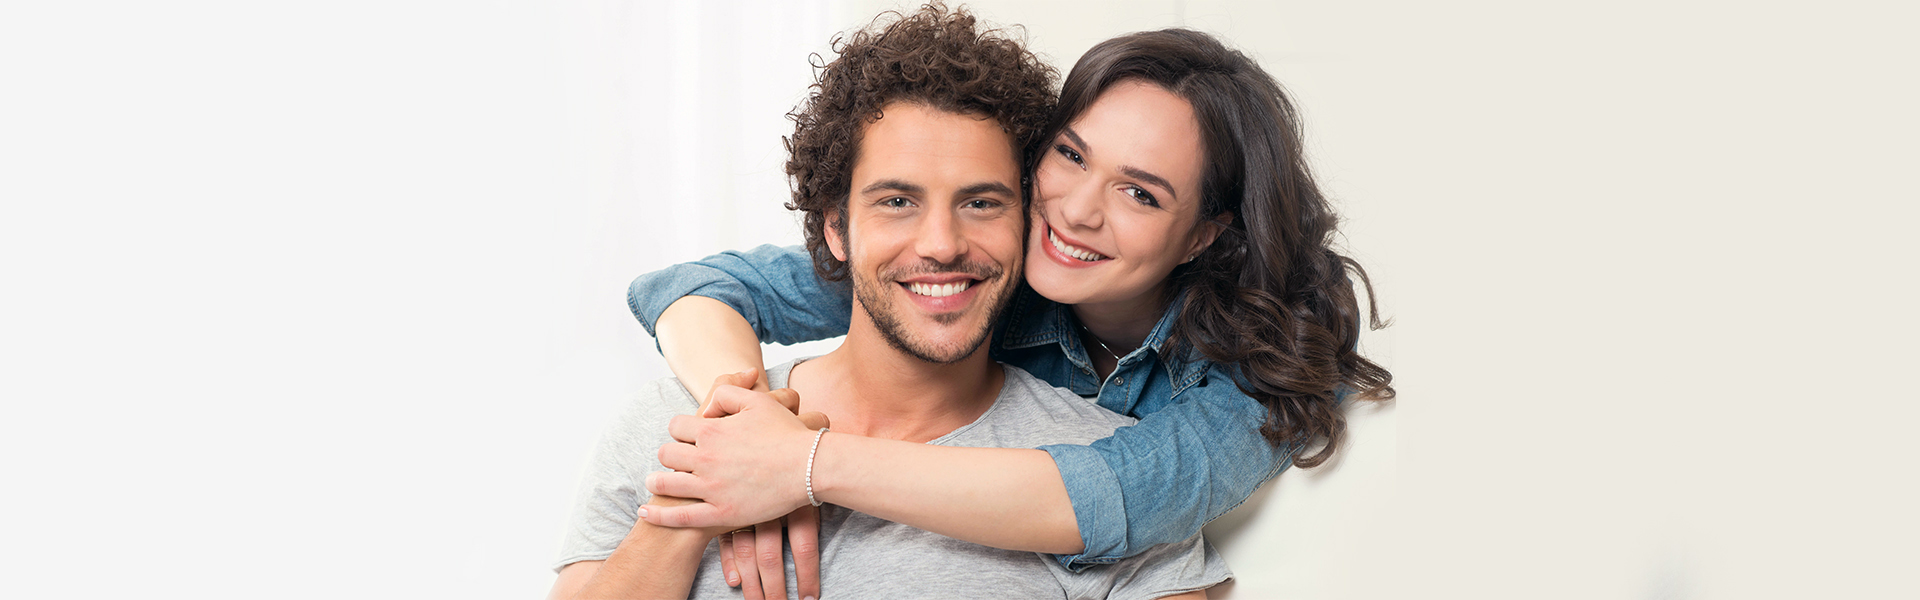 Dental Bonding Helps to Get Back Your Precious Smile before Valentine's Day